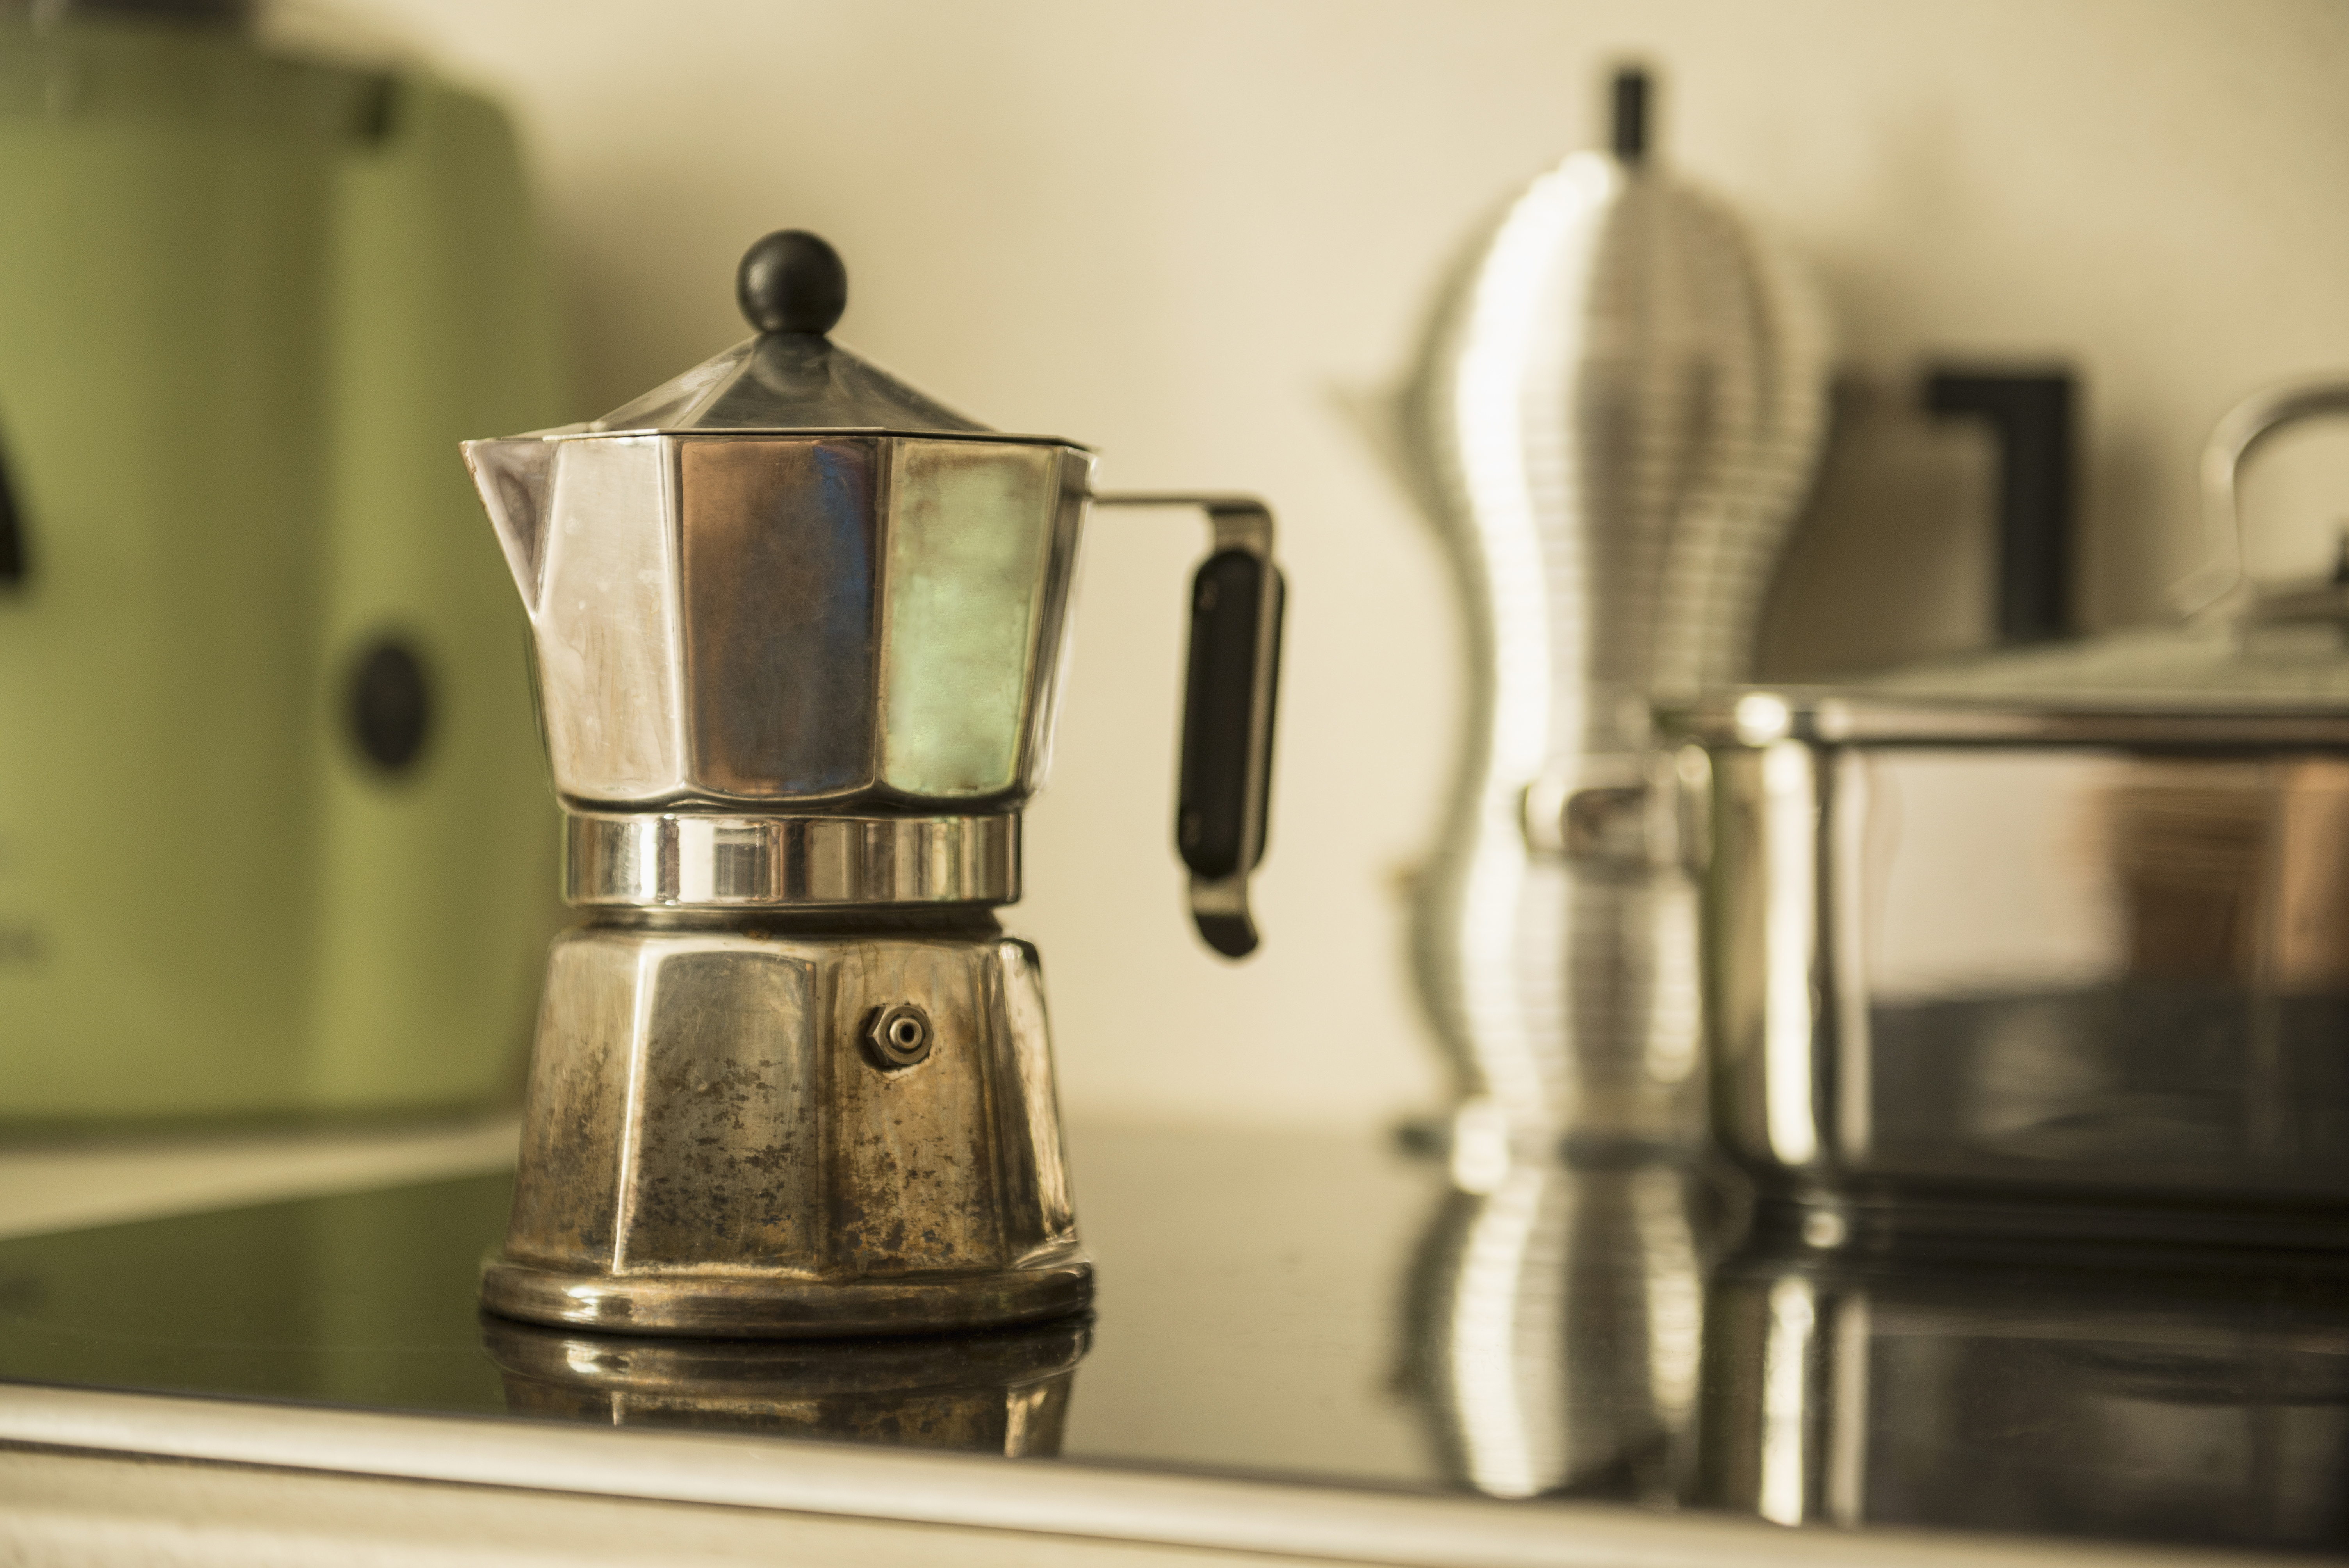 Espressokocher (Quelle: Thinkstock by Getty-Images/Dreet Production)